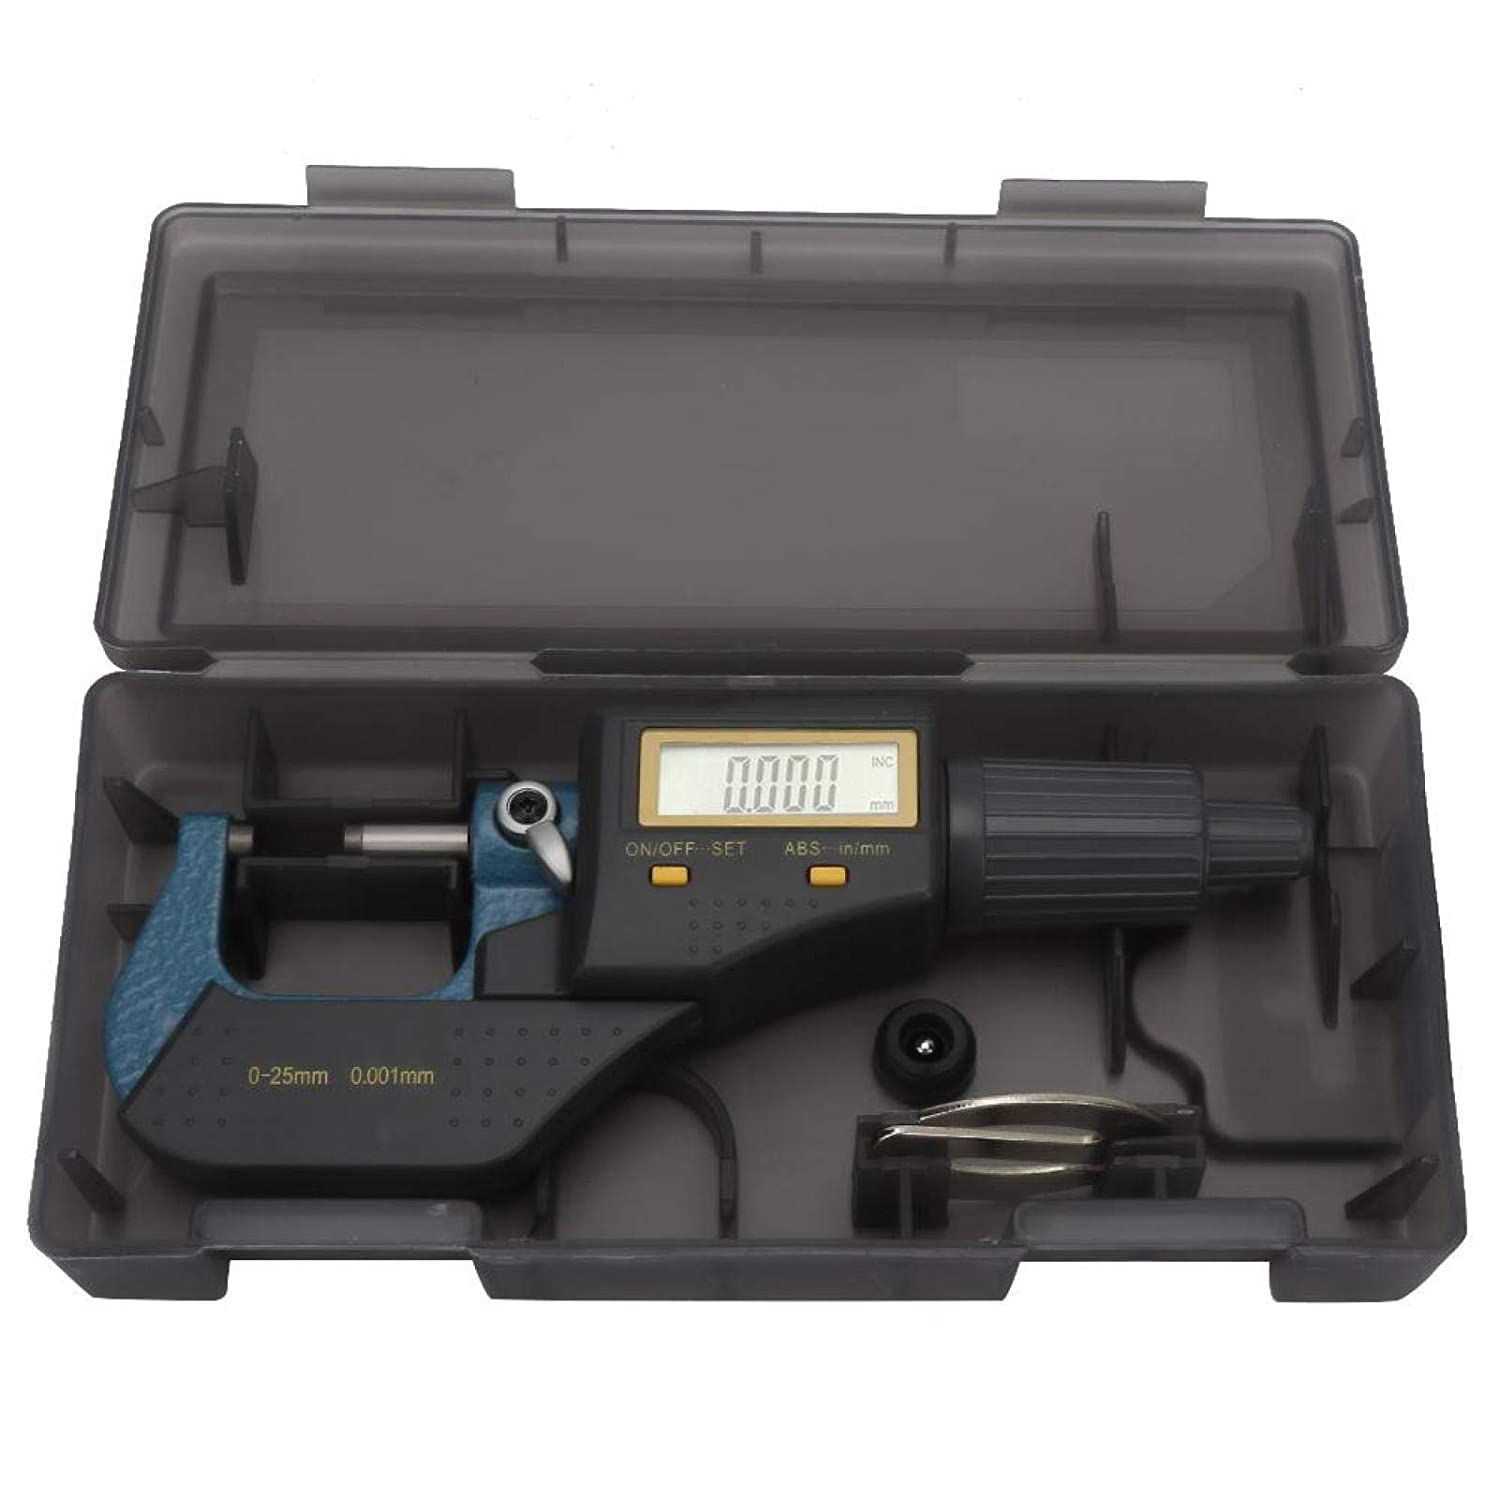 0.001mm Electronic Micrometer Max 48% OFF Durable Max 48% OFF Digital High